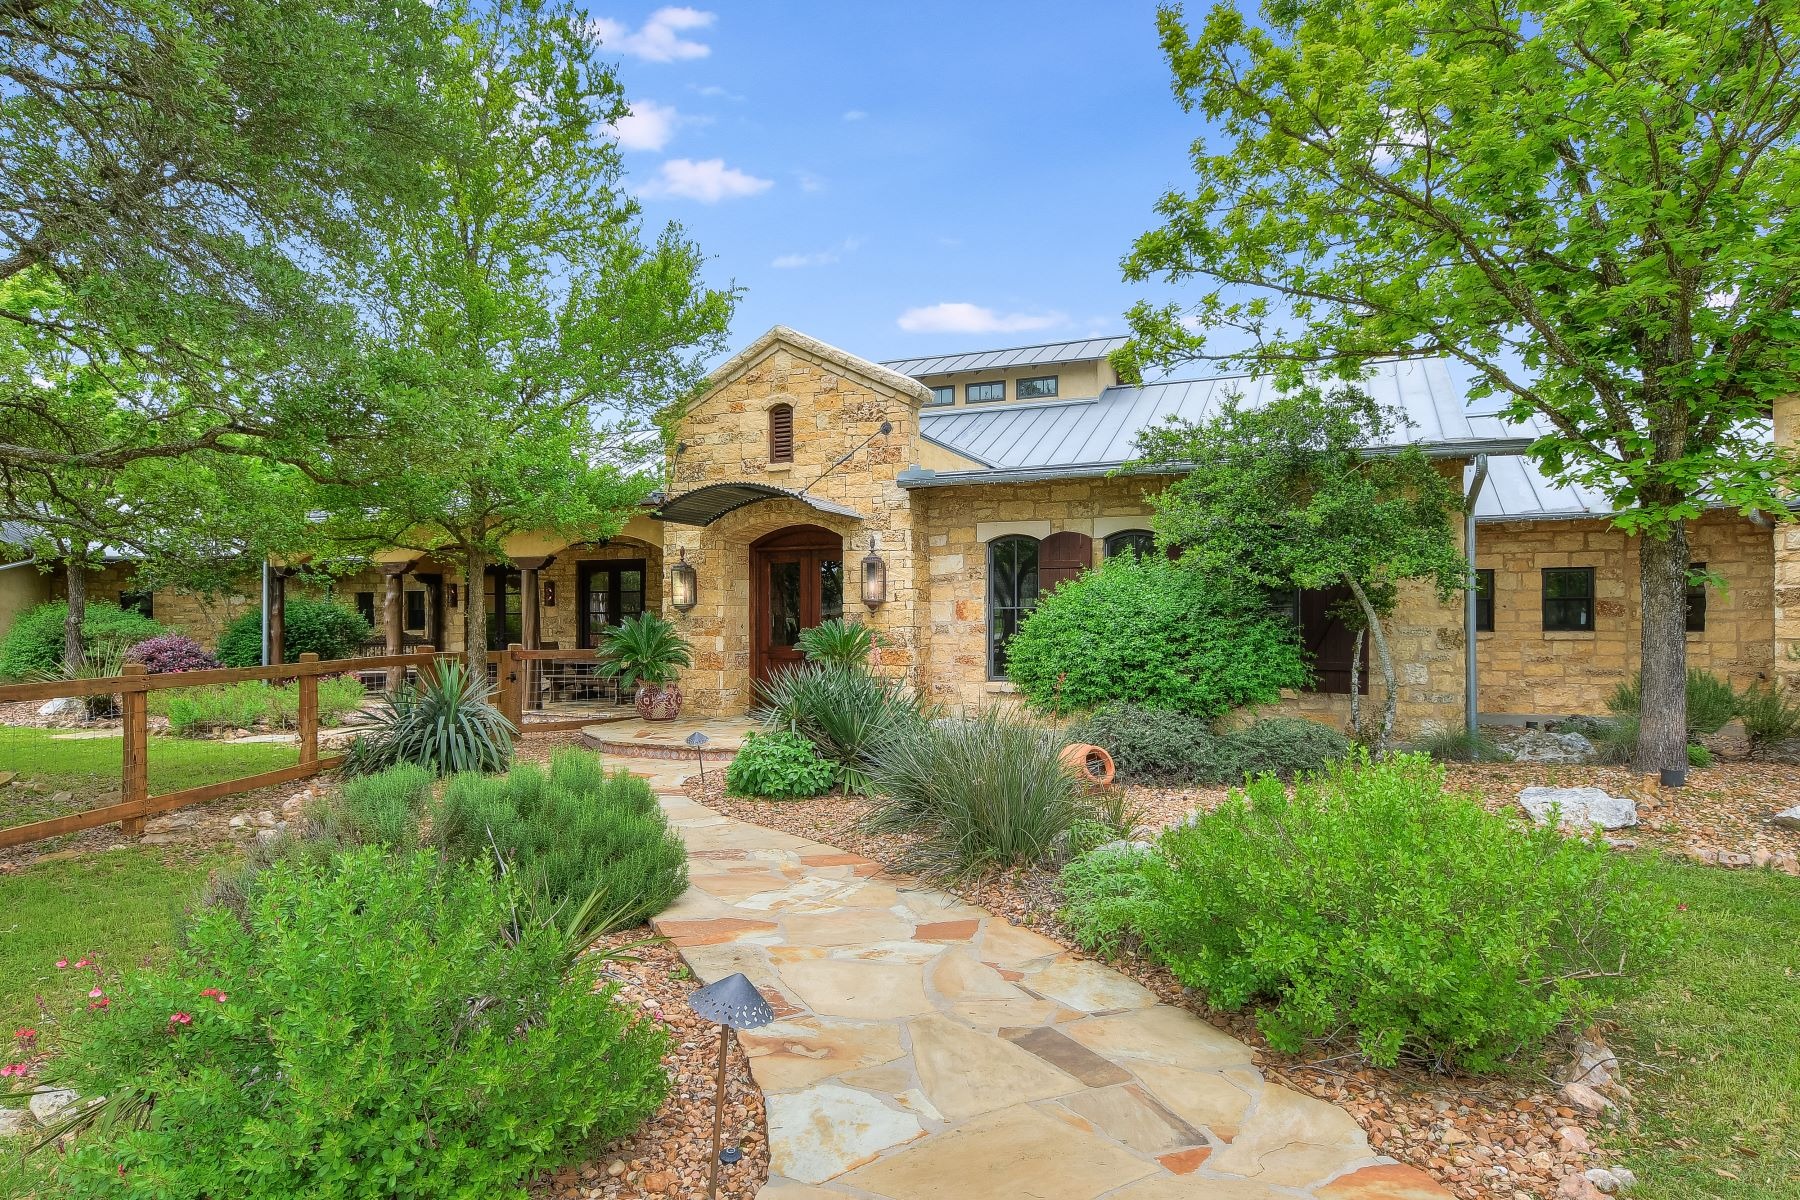 Single Family Homes for Sale at Exclusive Ranch in Boerne, TX 6713 Ranger Creek Road Boerne, Texas 78006 United States